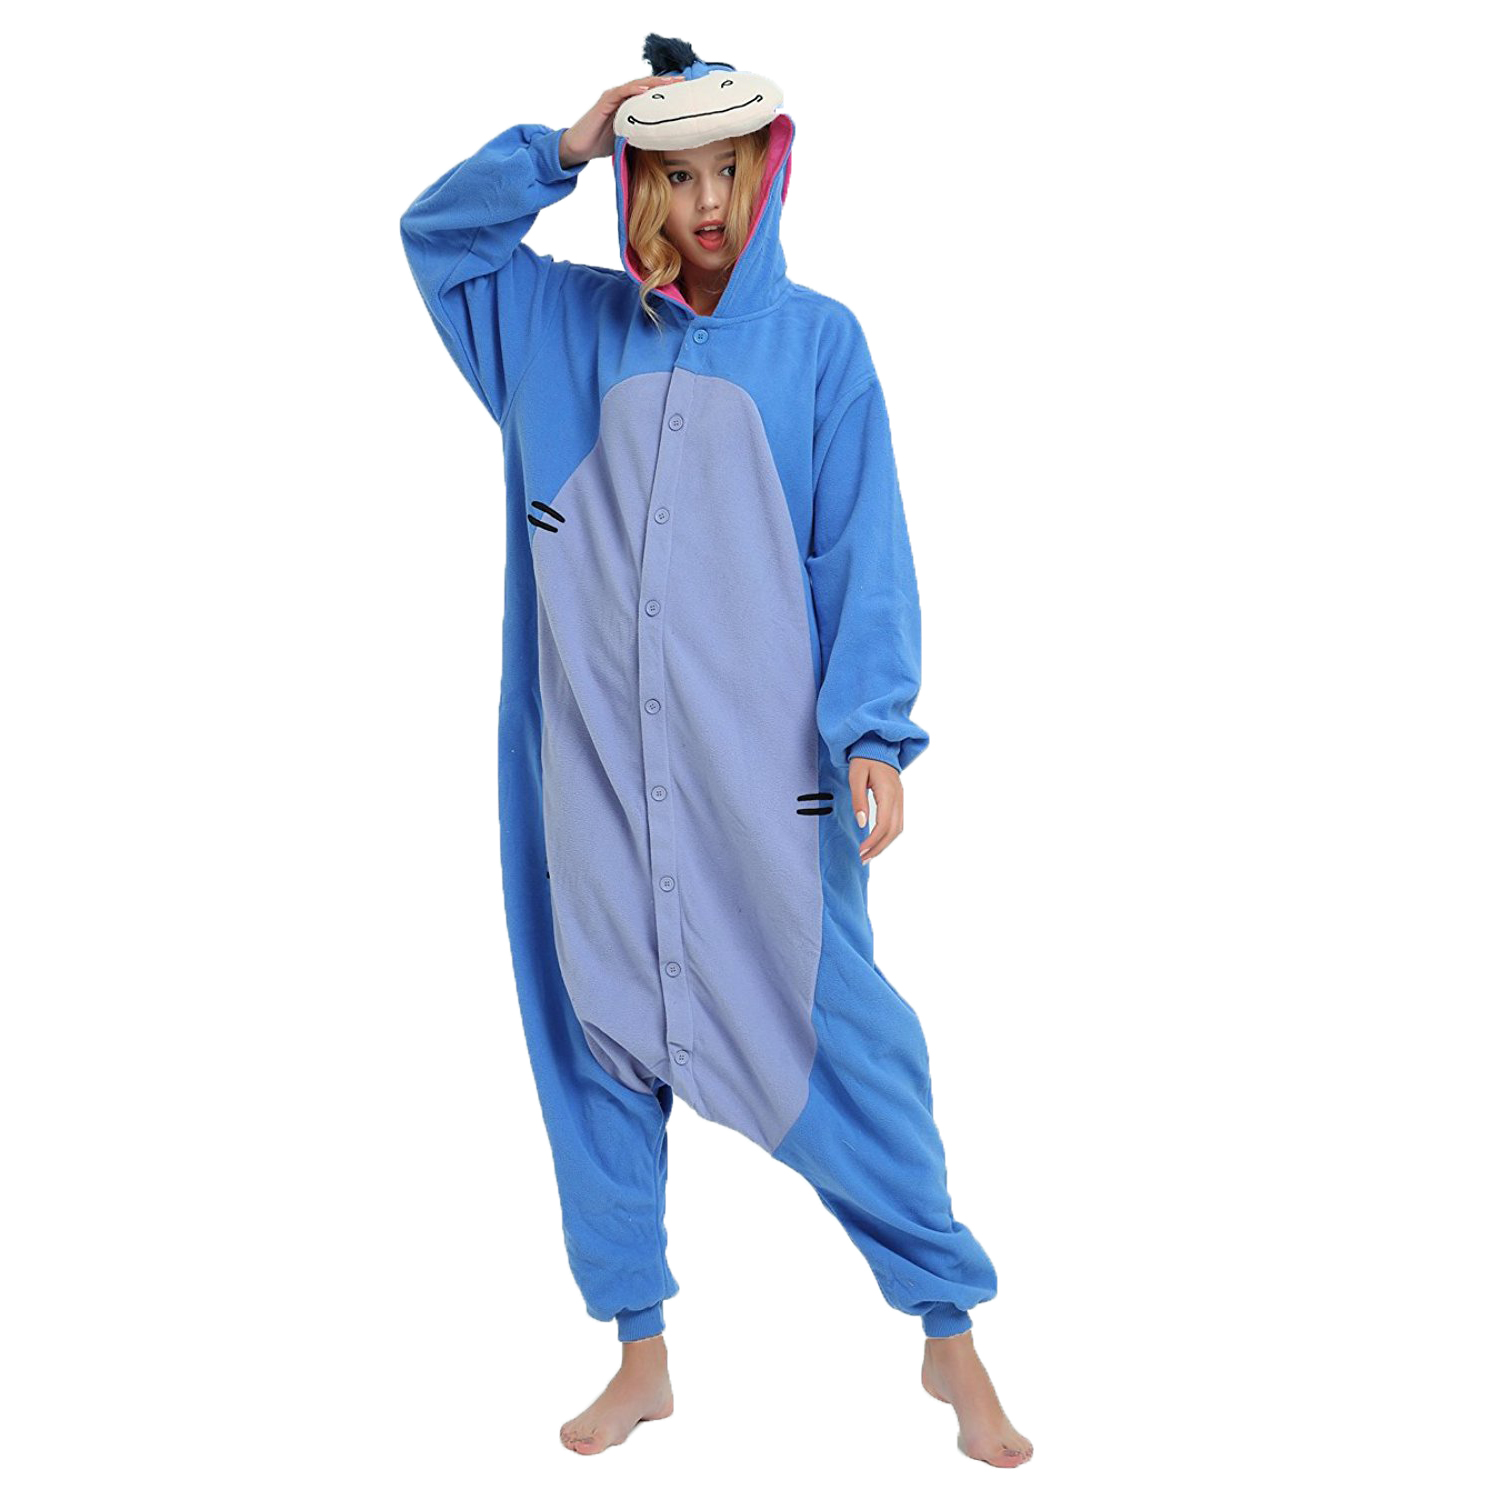 Eeyore onesie from wellpajamas.com